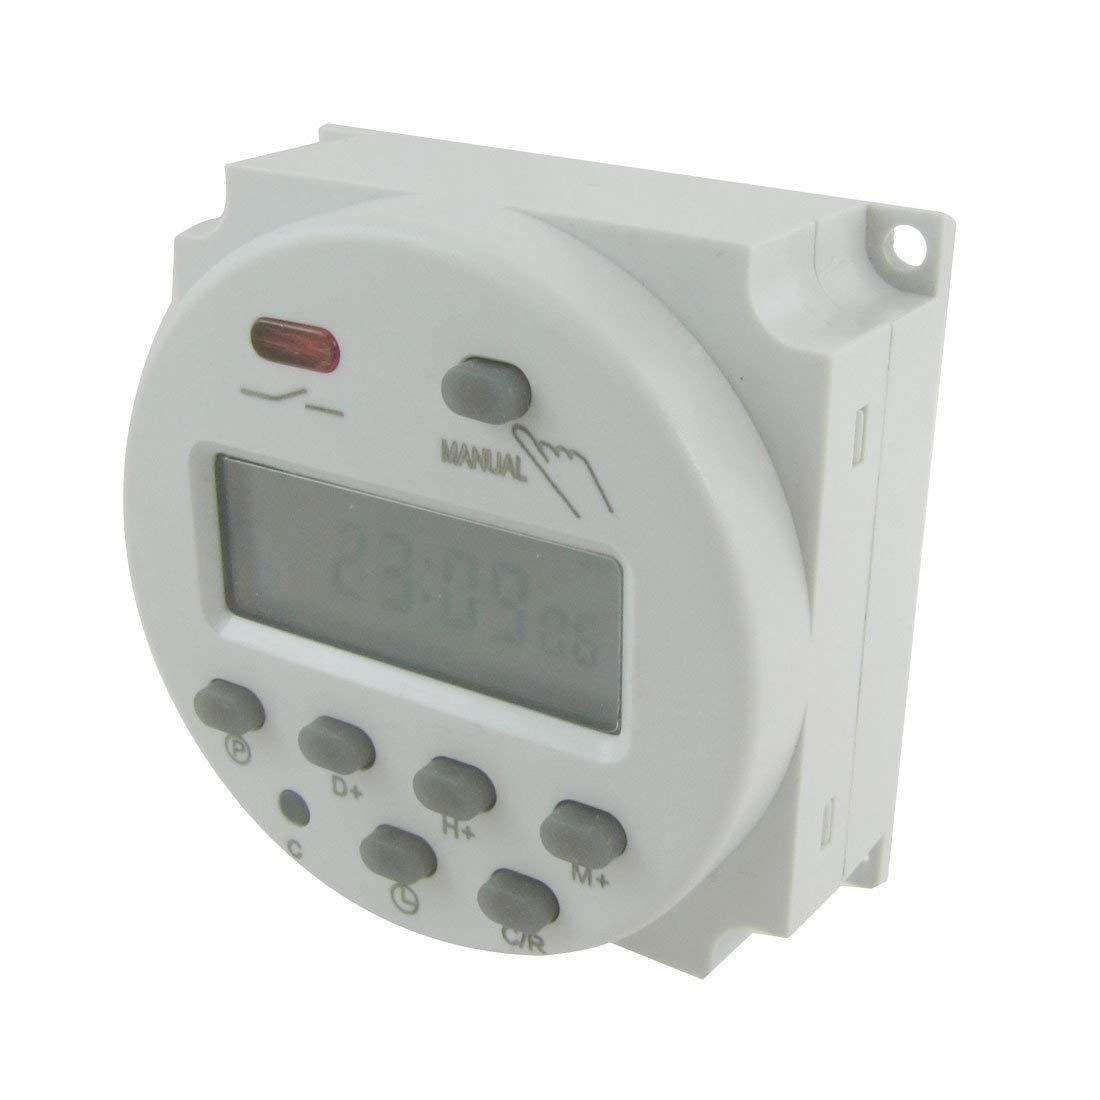 Lyanther A12031200ux0078 Power Programmable Timer Time Switch Relay